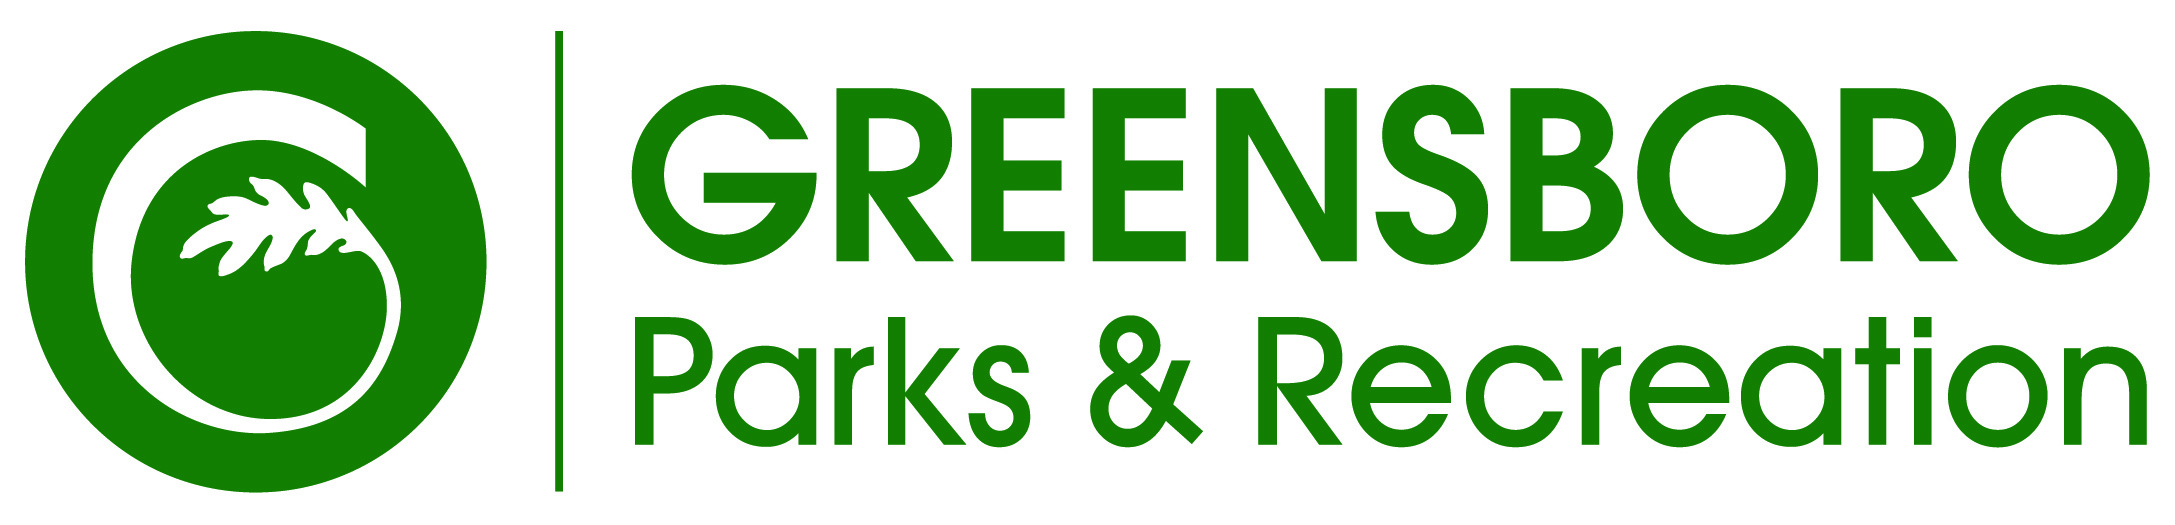 Greensboro Parks and Recreation logo